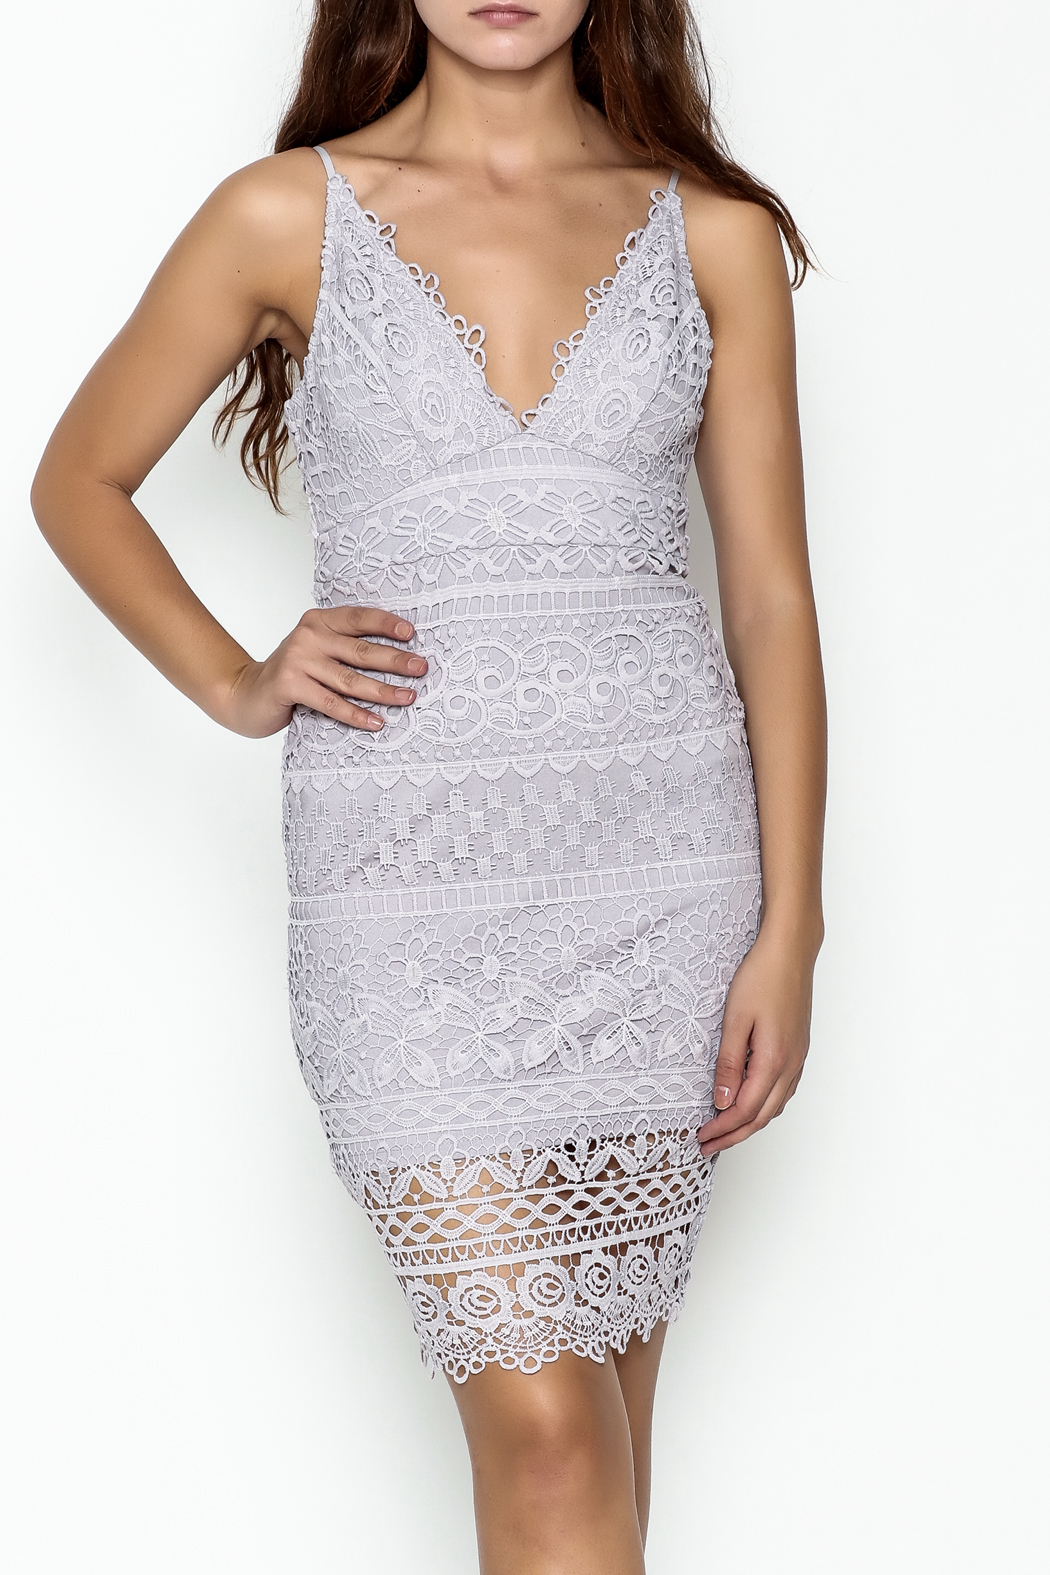 Ark & Co. Lace Dress - Main Image